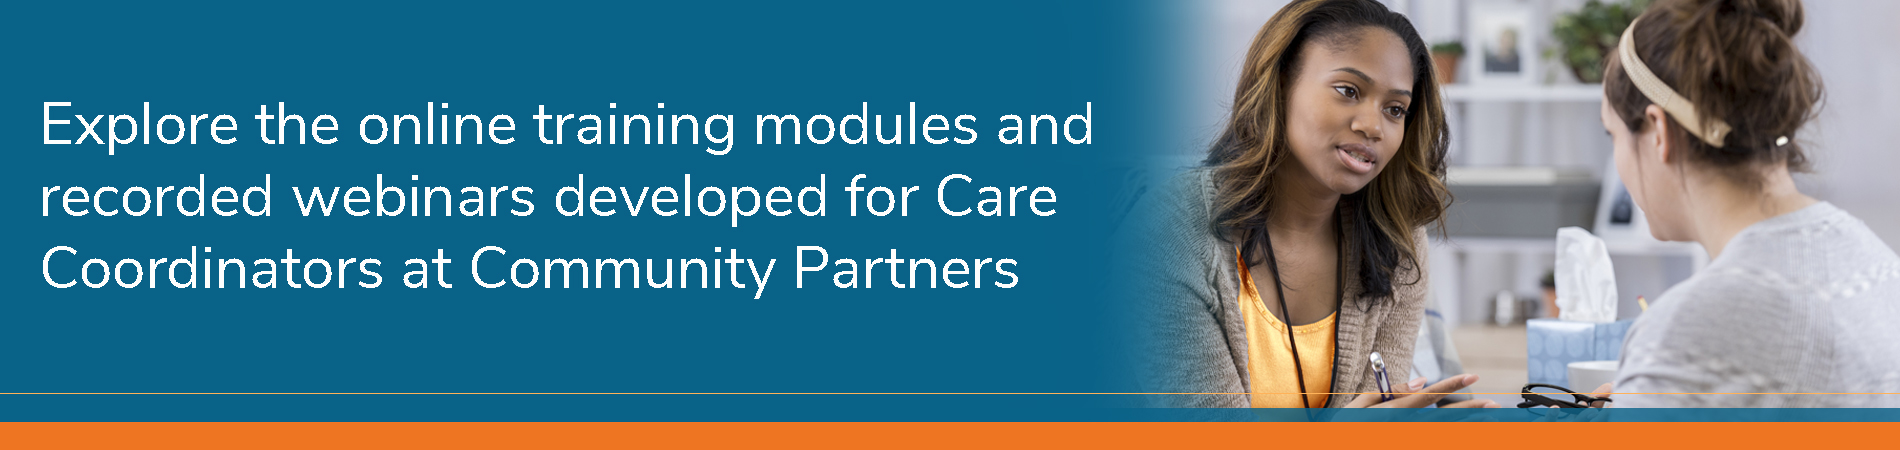 Explore the online training modules and recorded webinars developed for Care Coordinators at Community Partners